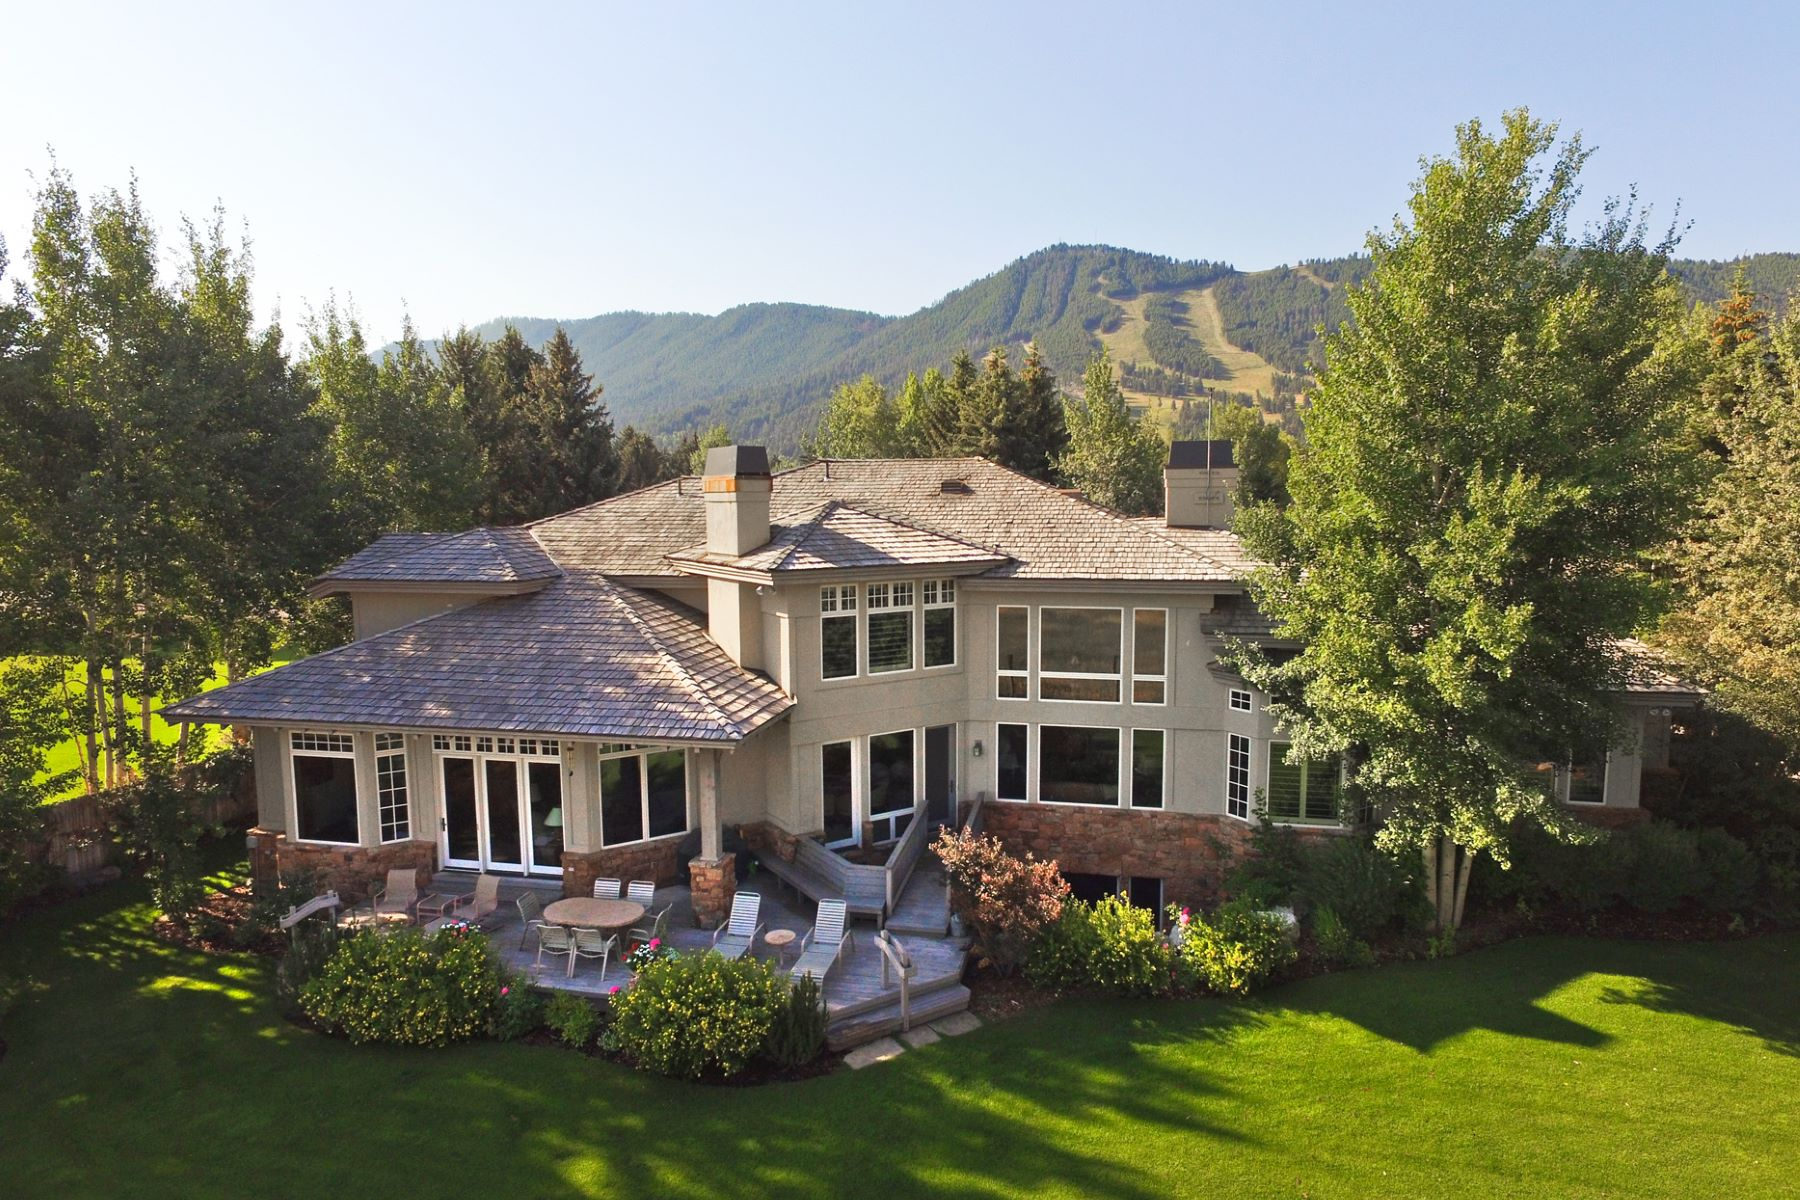 Single Family Home for Sale at Gill Addition Gem 355 Teton Ave Jackson, Wyoming 83001 United States